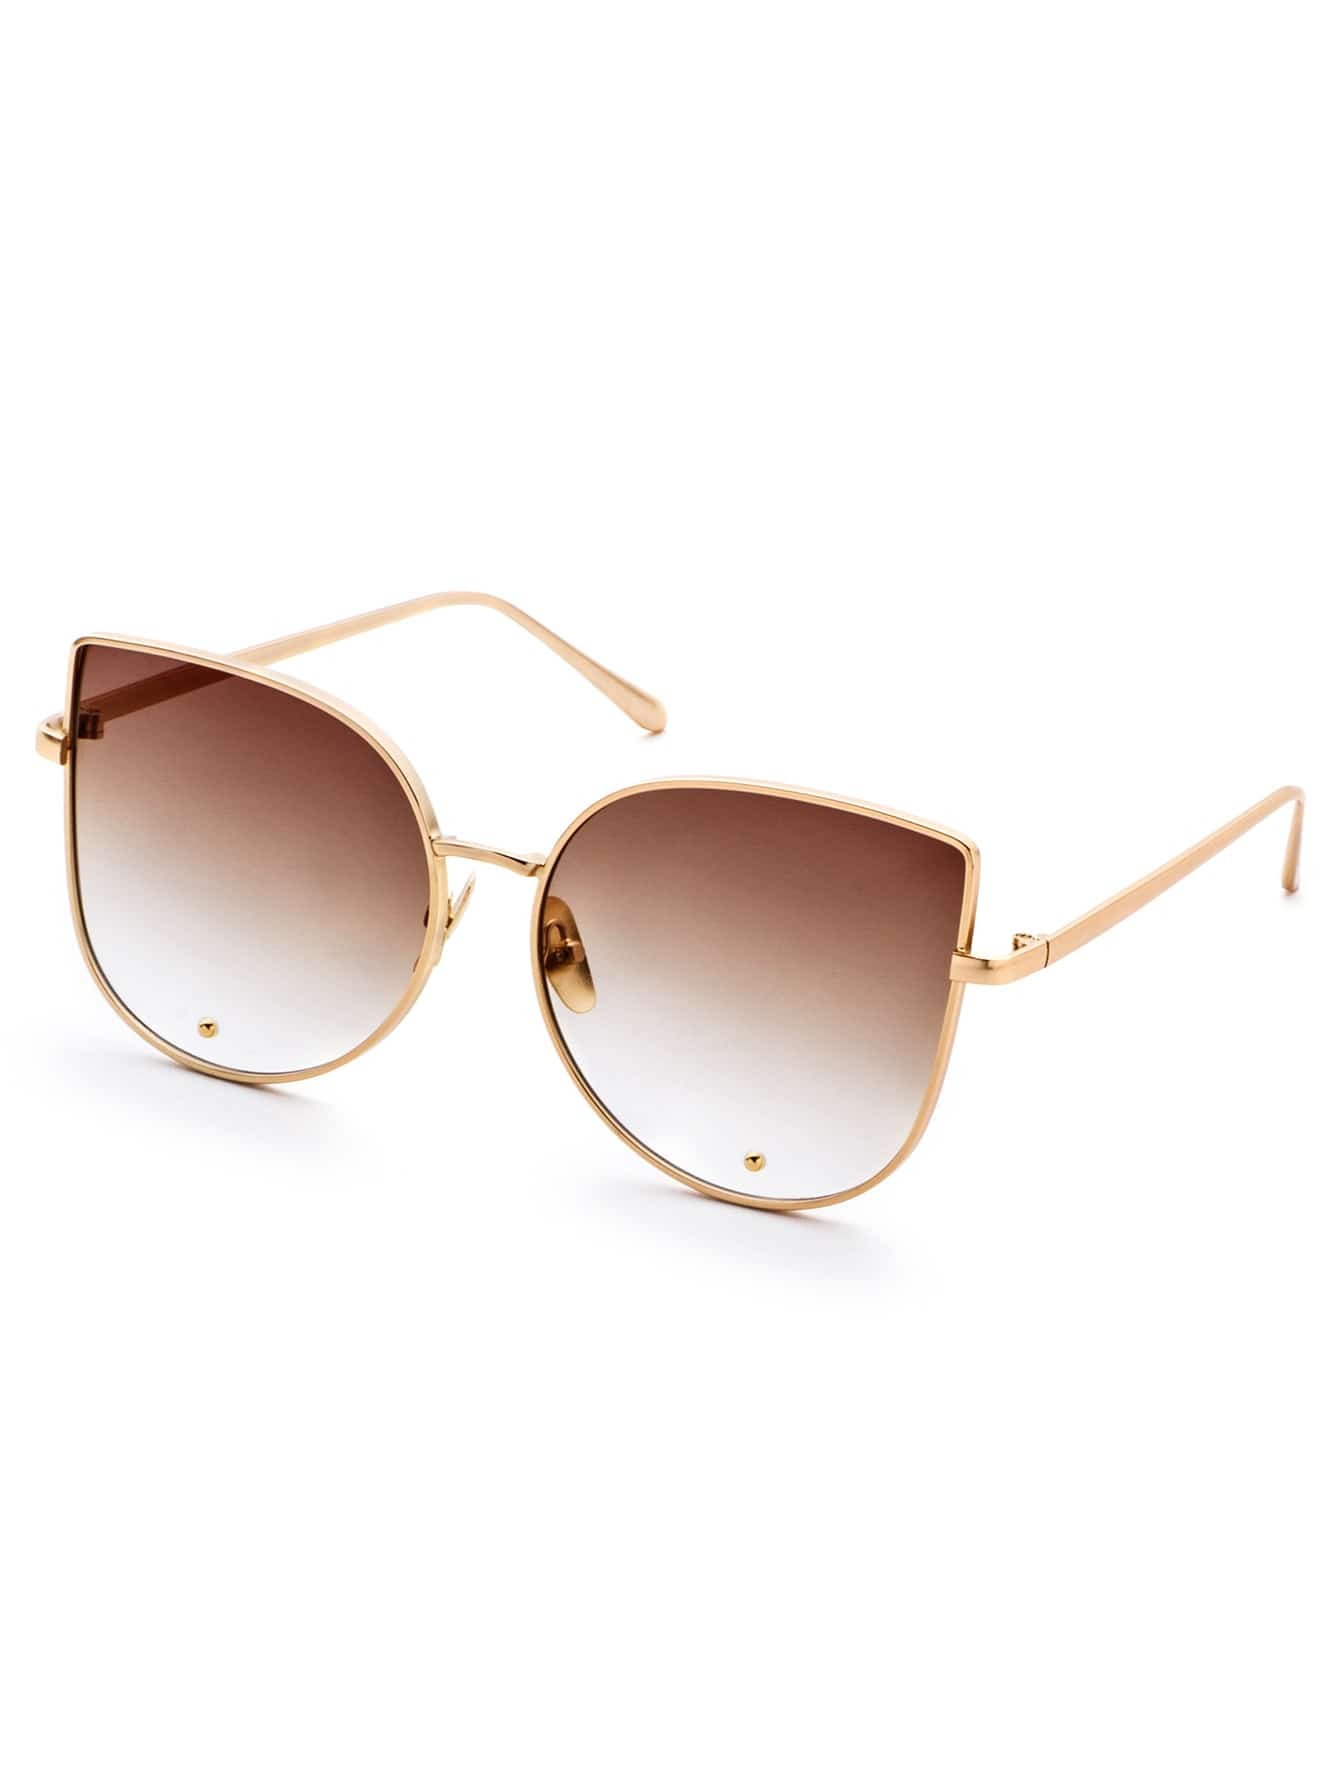 Gold Frame Brown Cat Eye Stylish SunglassesGold Frame Brown Cat Eye Stylish Sunglasses<br><br>color: Brown<br>size: None